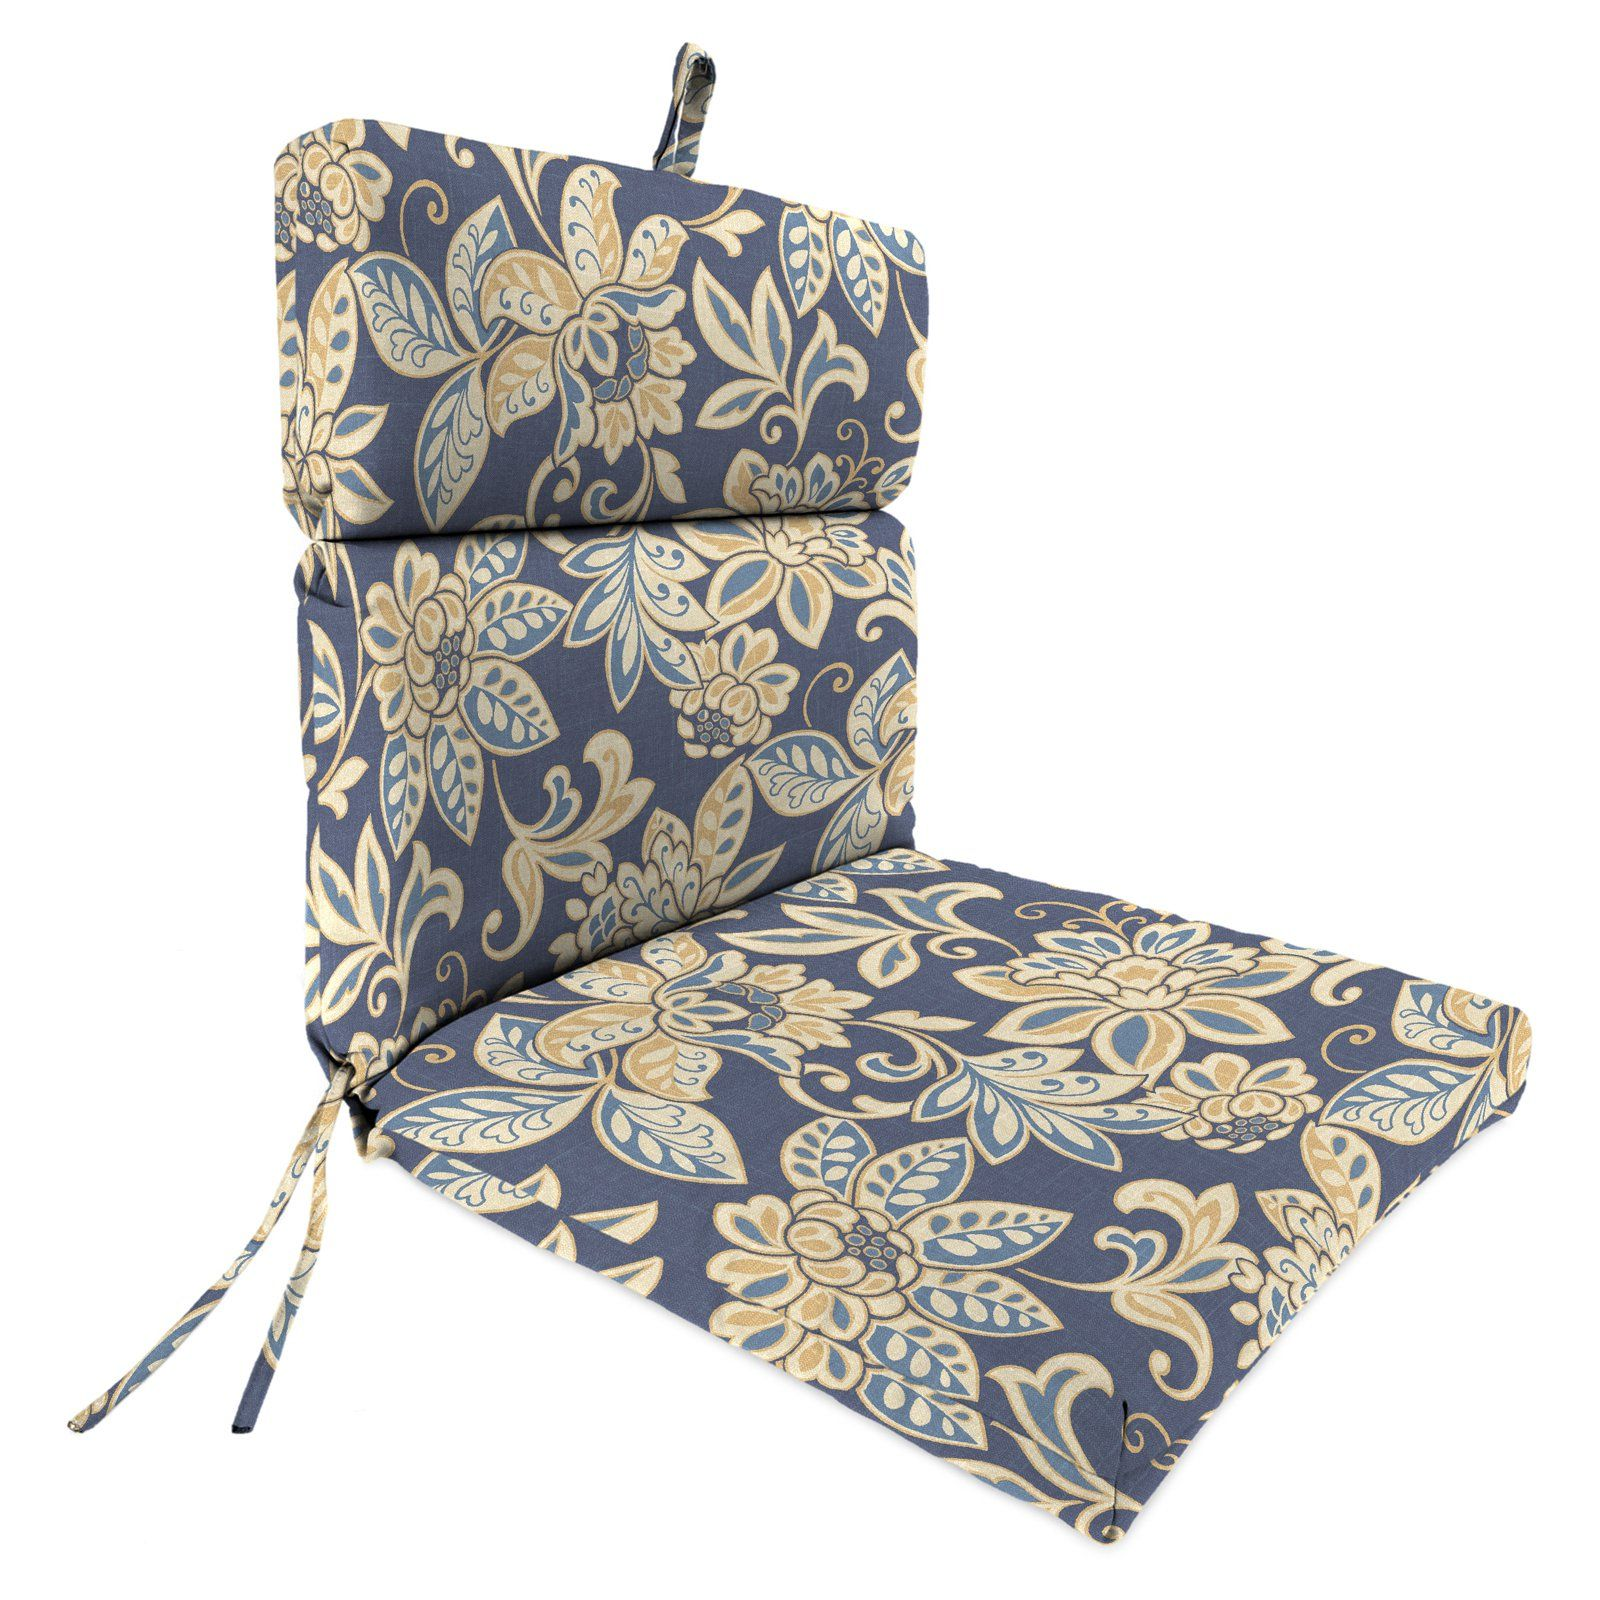 Best Of Patio Chair Seat Cushions